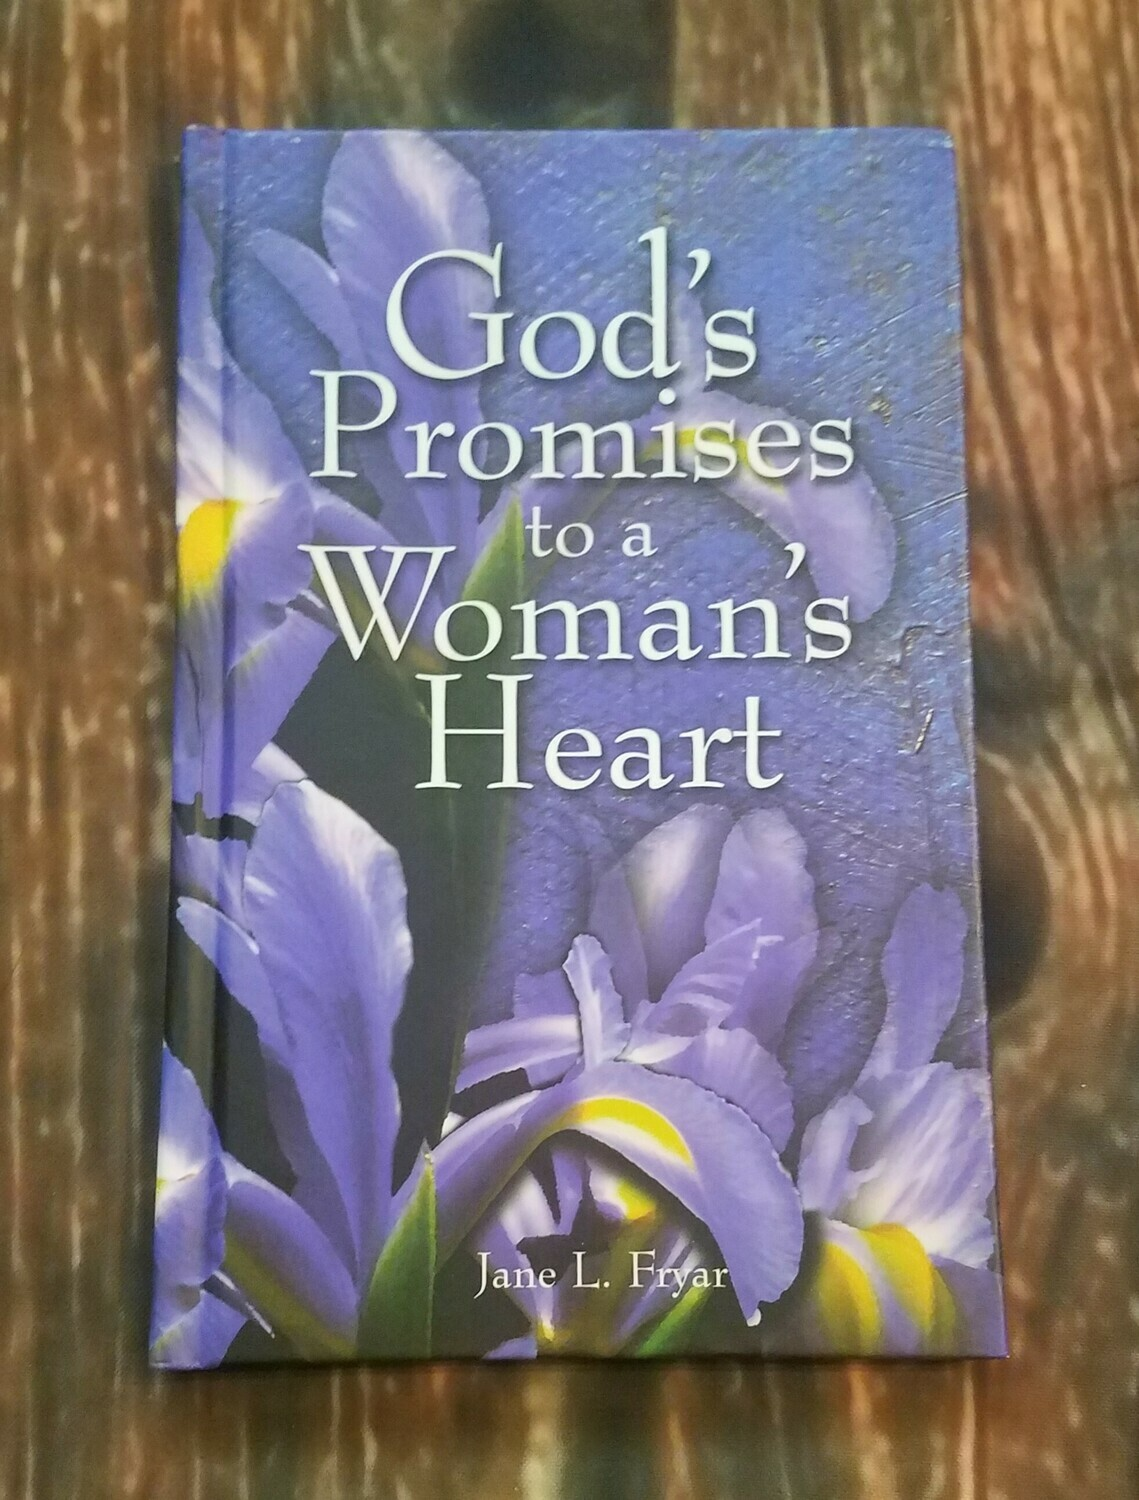 God's Promises to a Woman's Heart by Jane L. Fryar